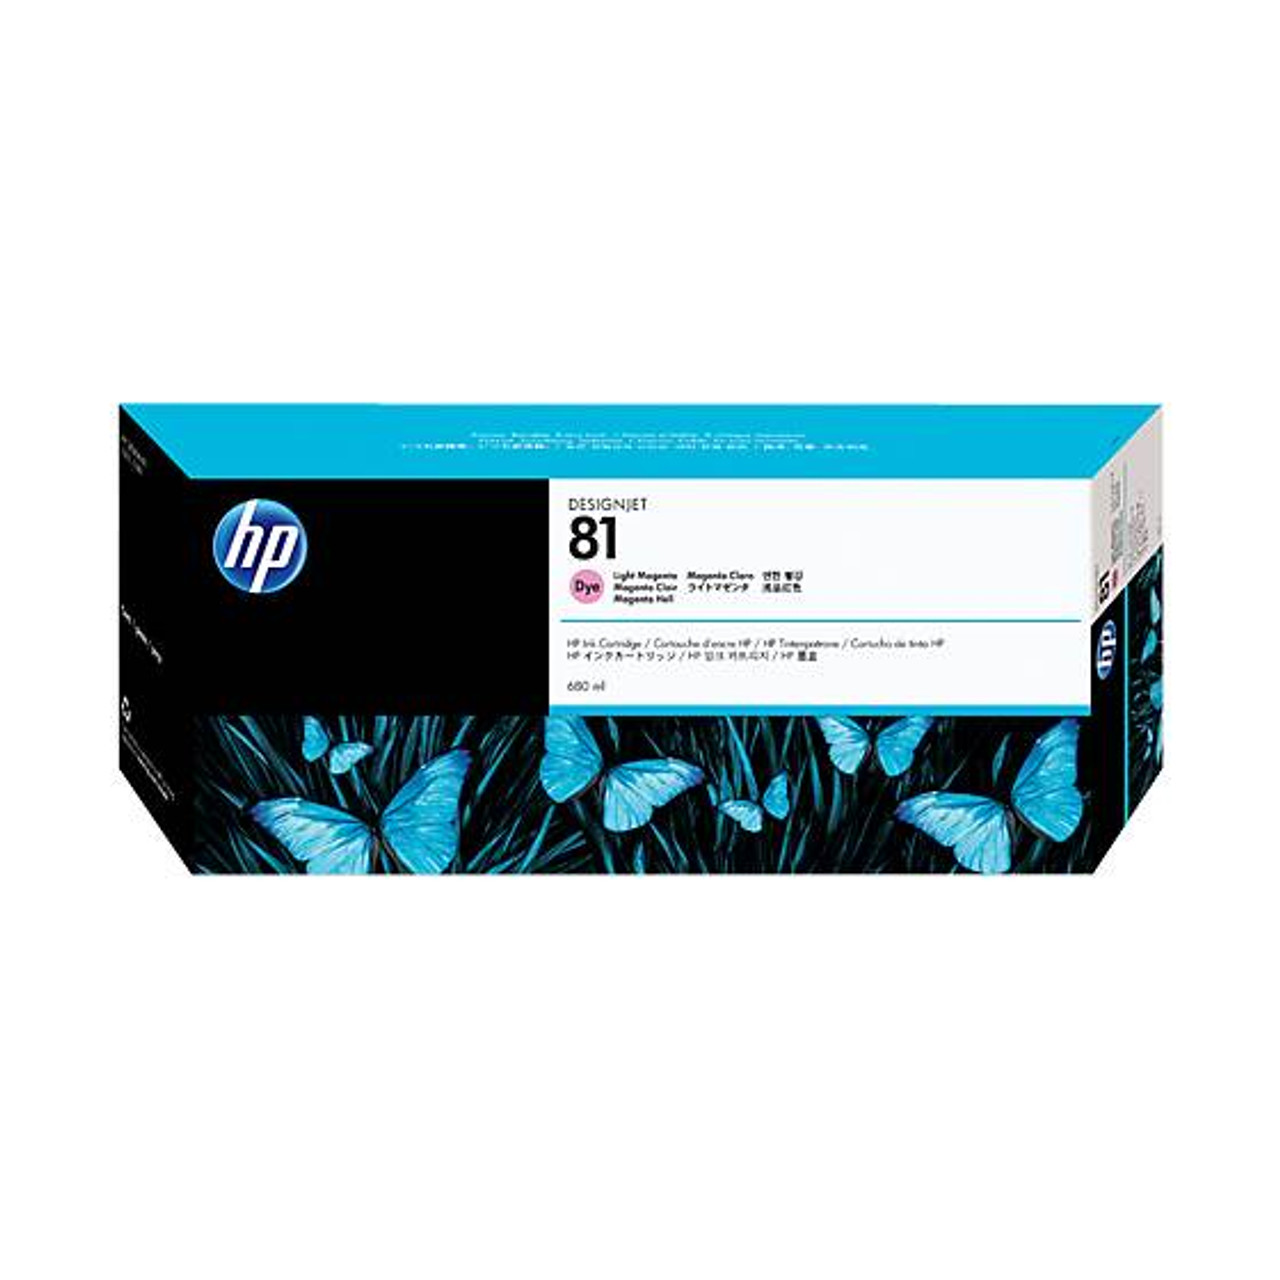 Image for HP 81 Light Magenta Dye 680ml Ink Cartridge (C4935A) CX Computer Superstore